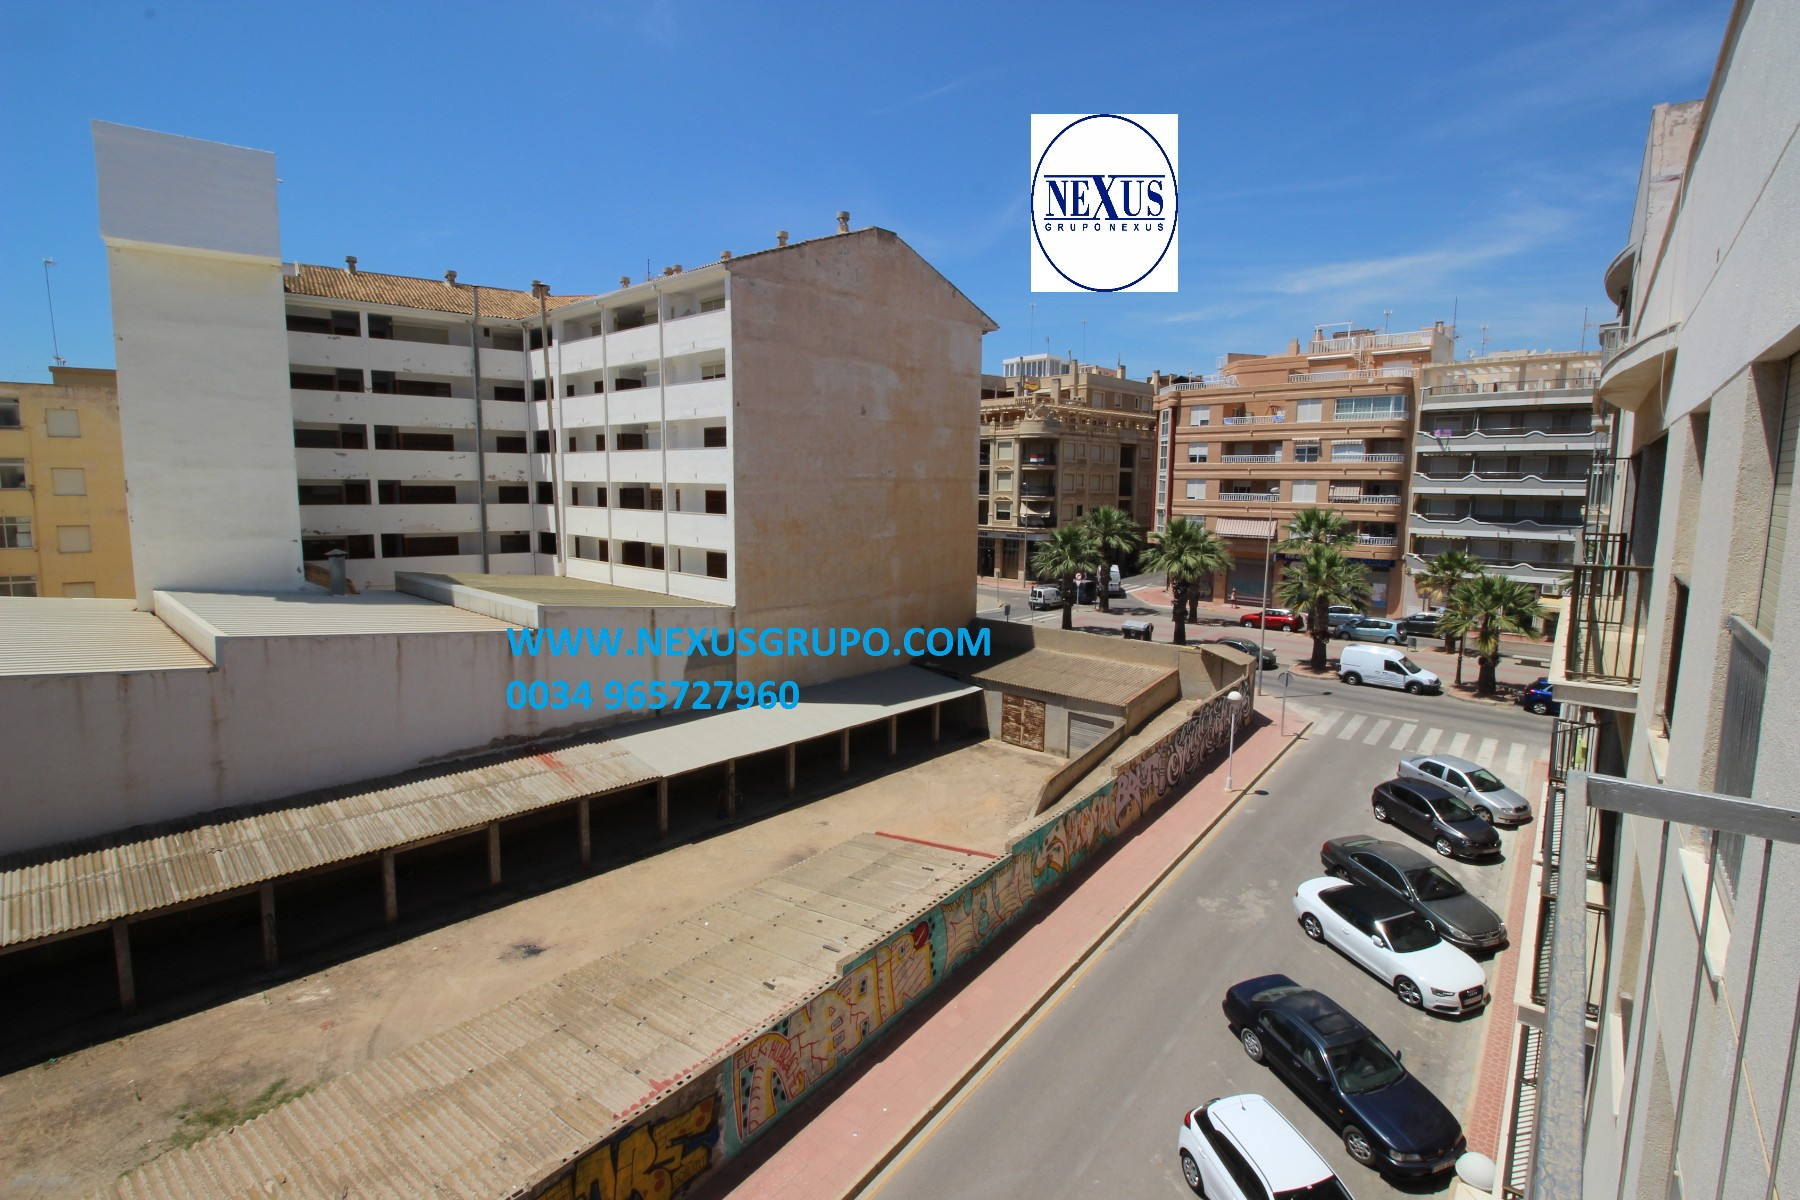 APARTMENT FOR RENT - COSTA BLANCA - GUARDAMAR DEL SEGURA in Nexus Grupo